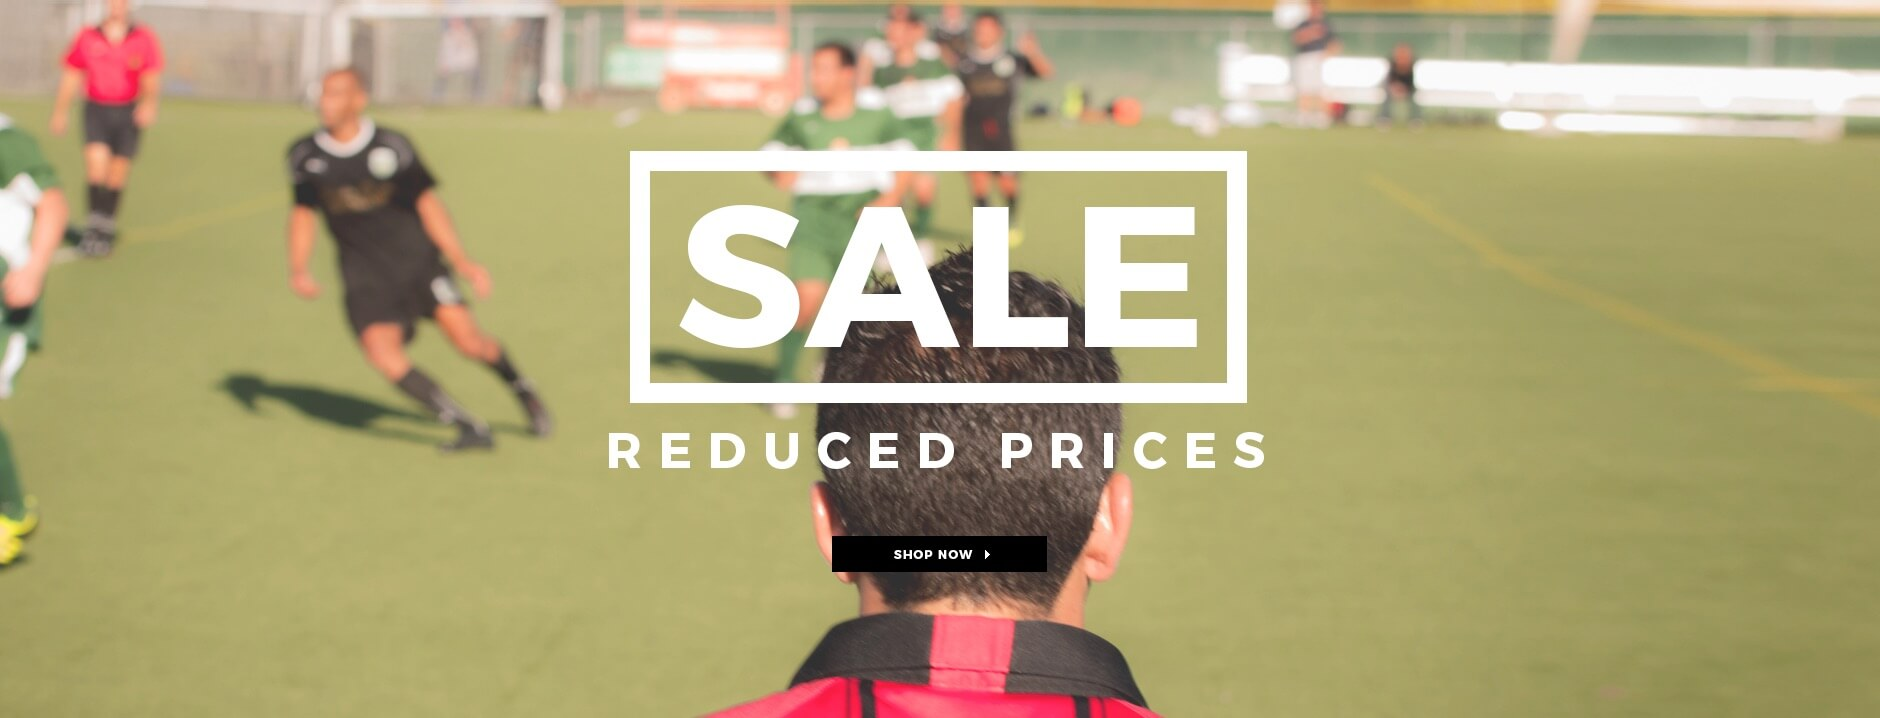 Sale: Reduced Prices